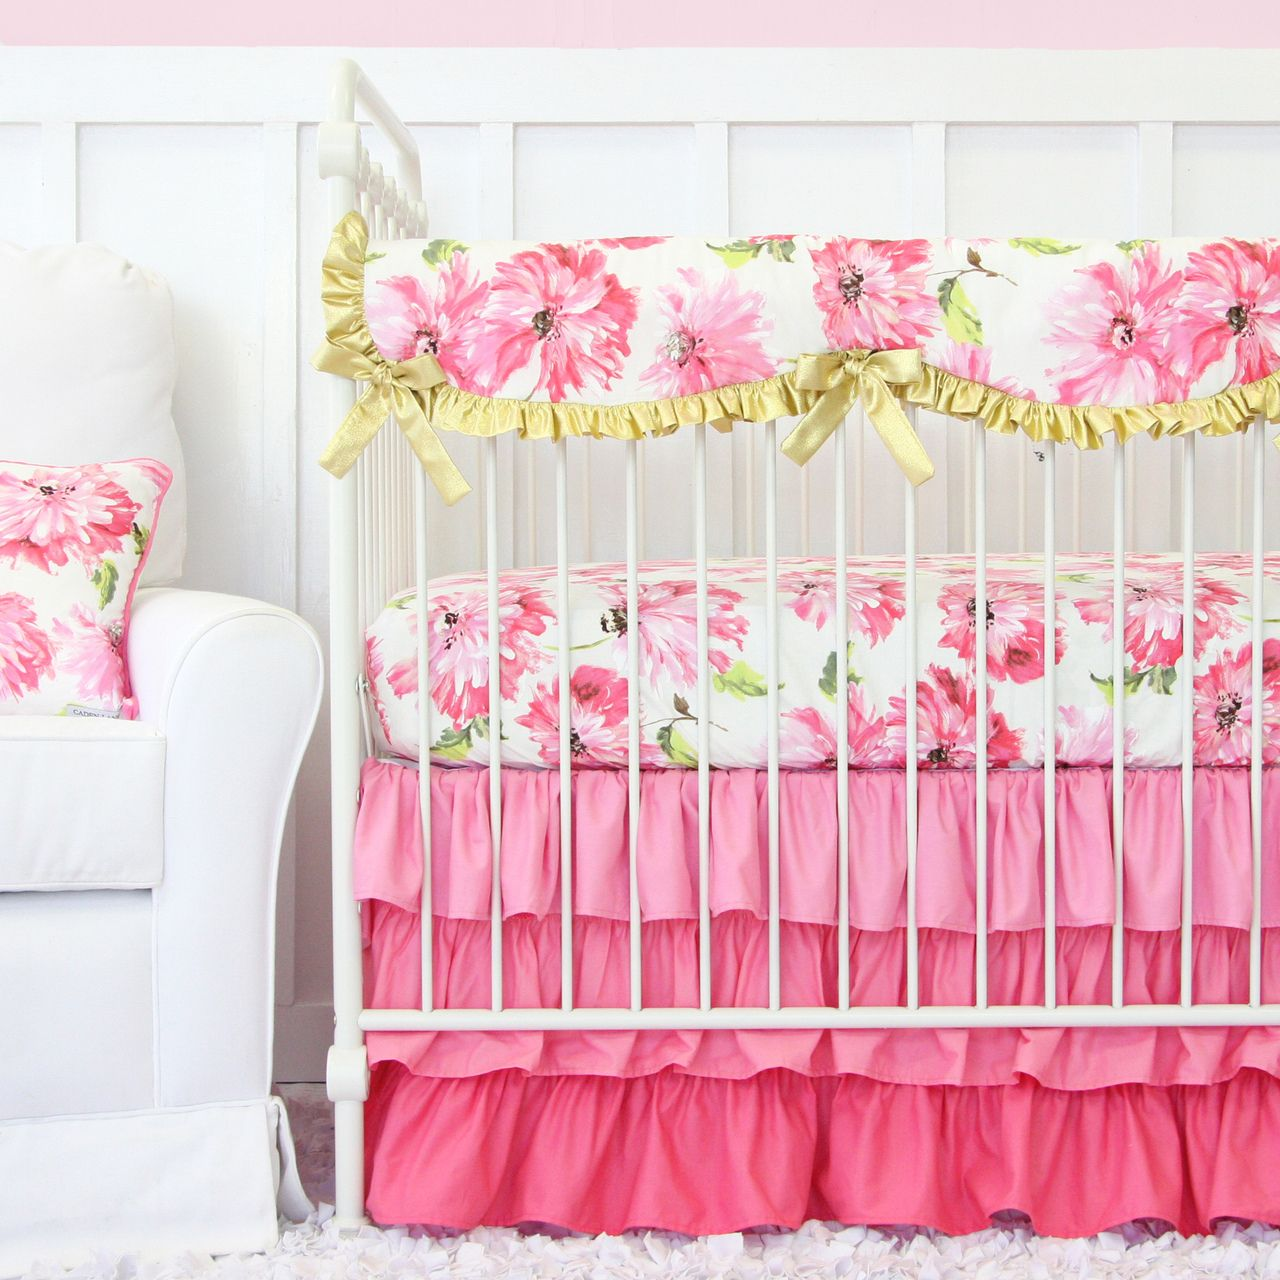 Caden Lane S Pink Petunia Crib Bedding Is The Perfect Set For A